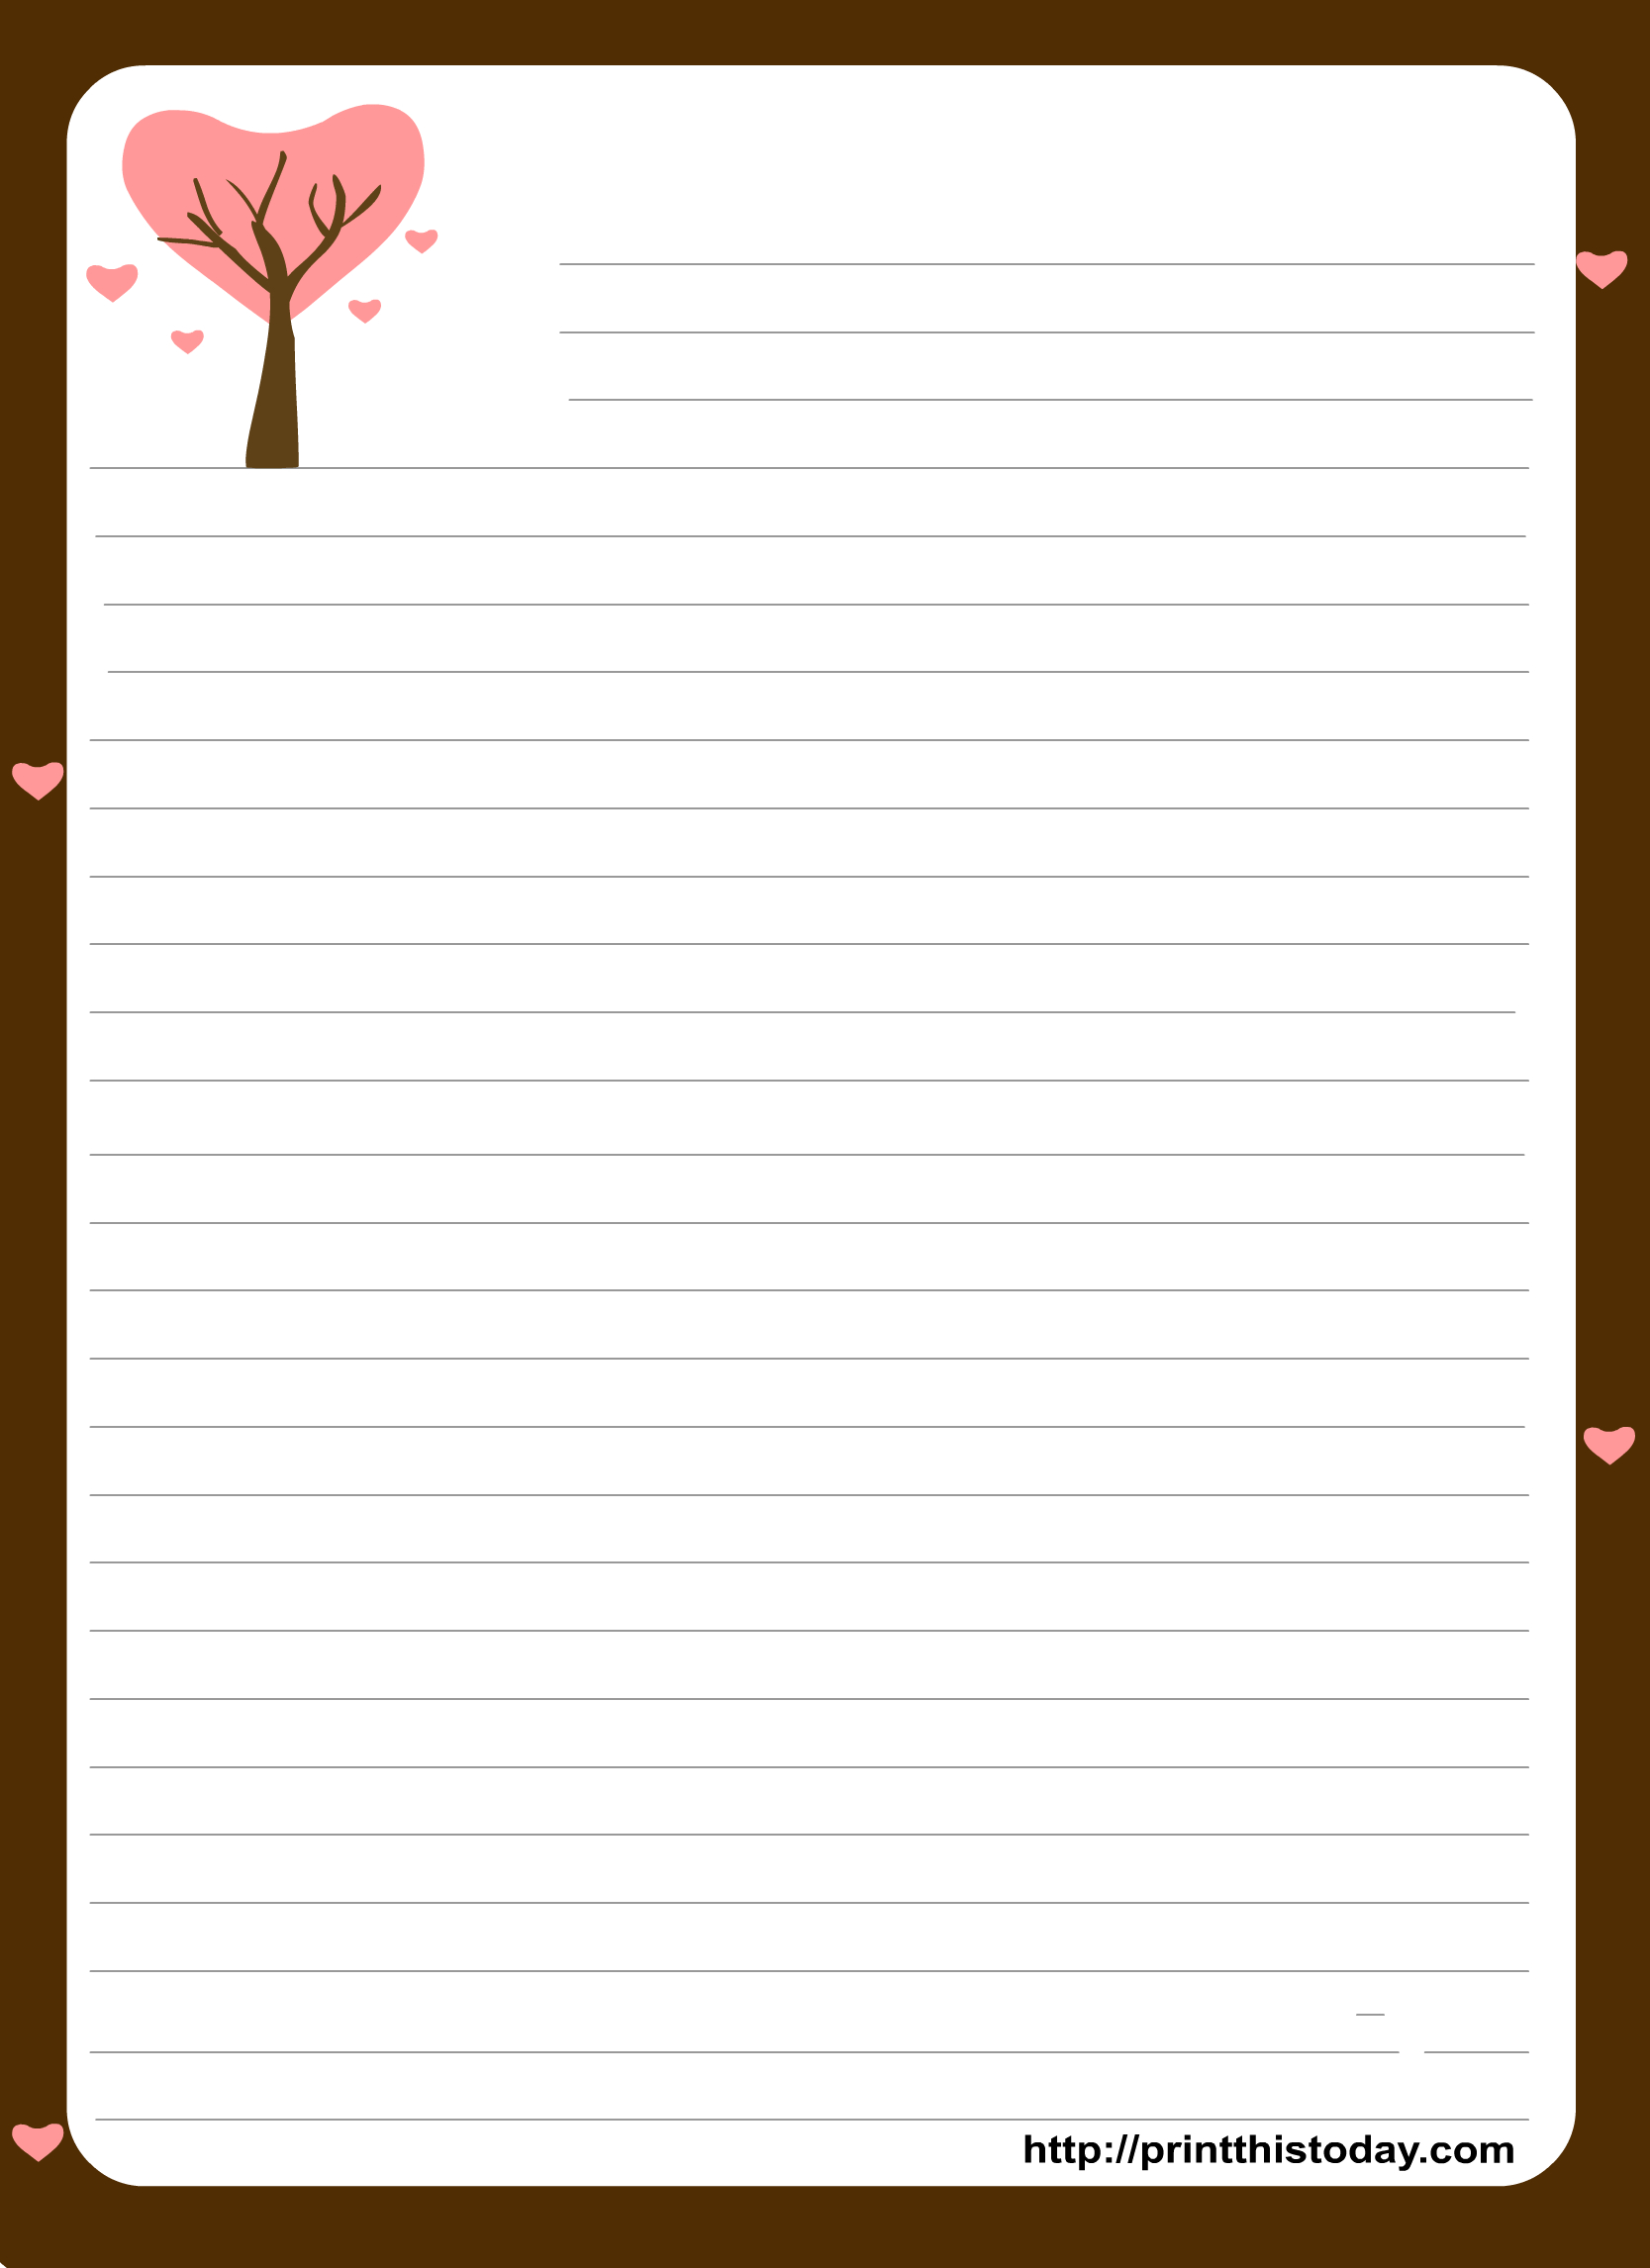 Free Printable Stationery Paper | Free Printable Stationary With - Free Printable Elegant Stationery Templates